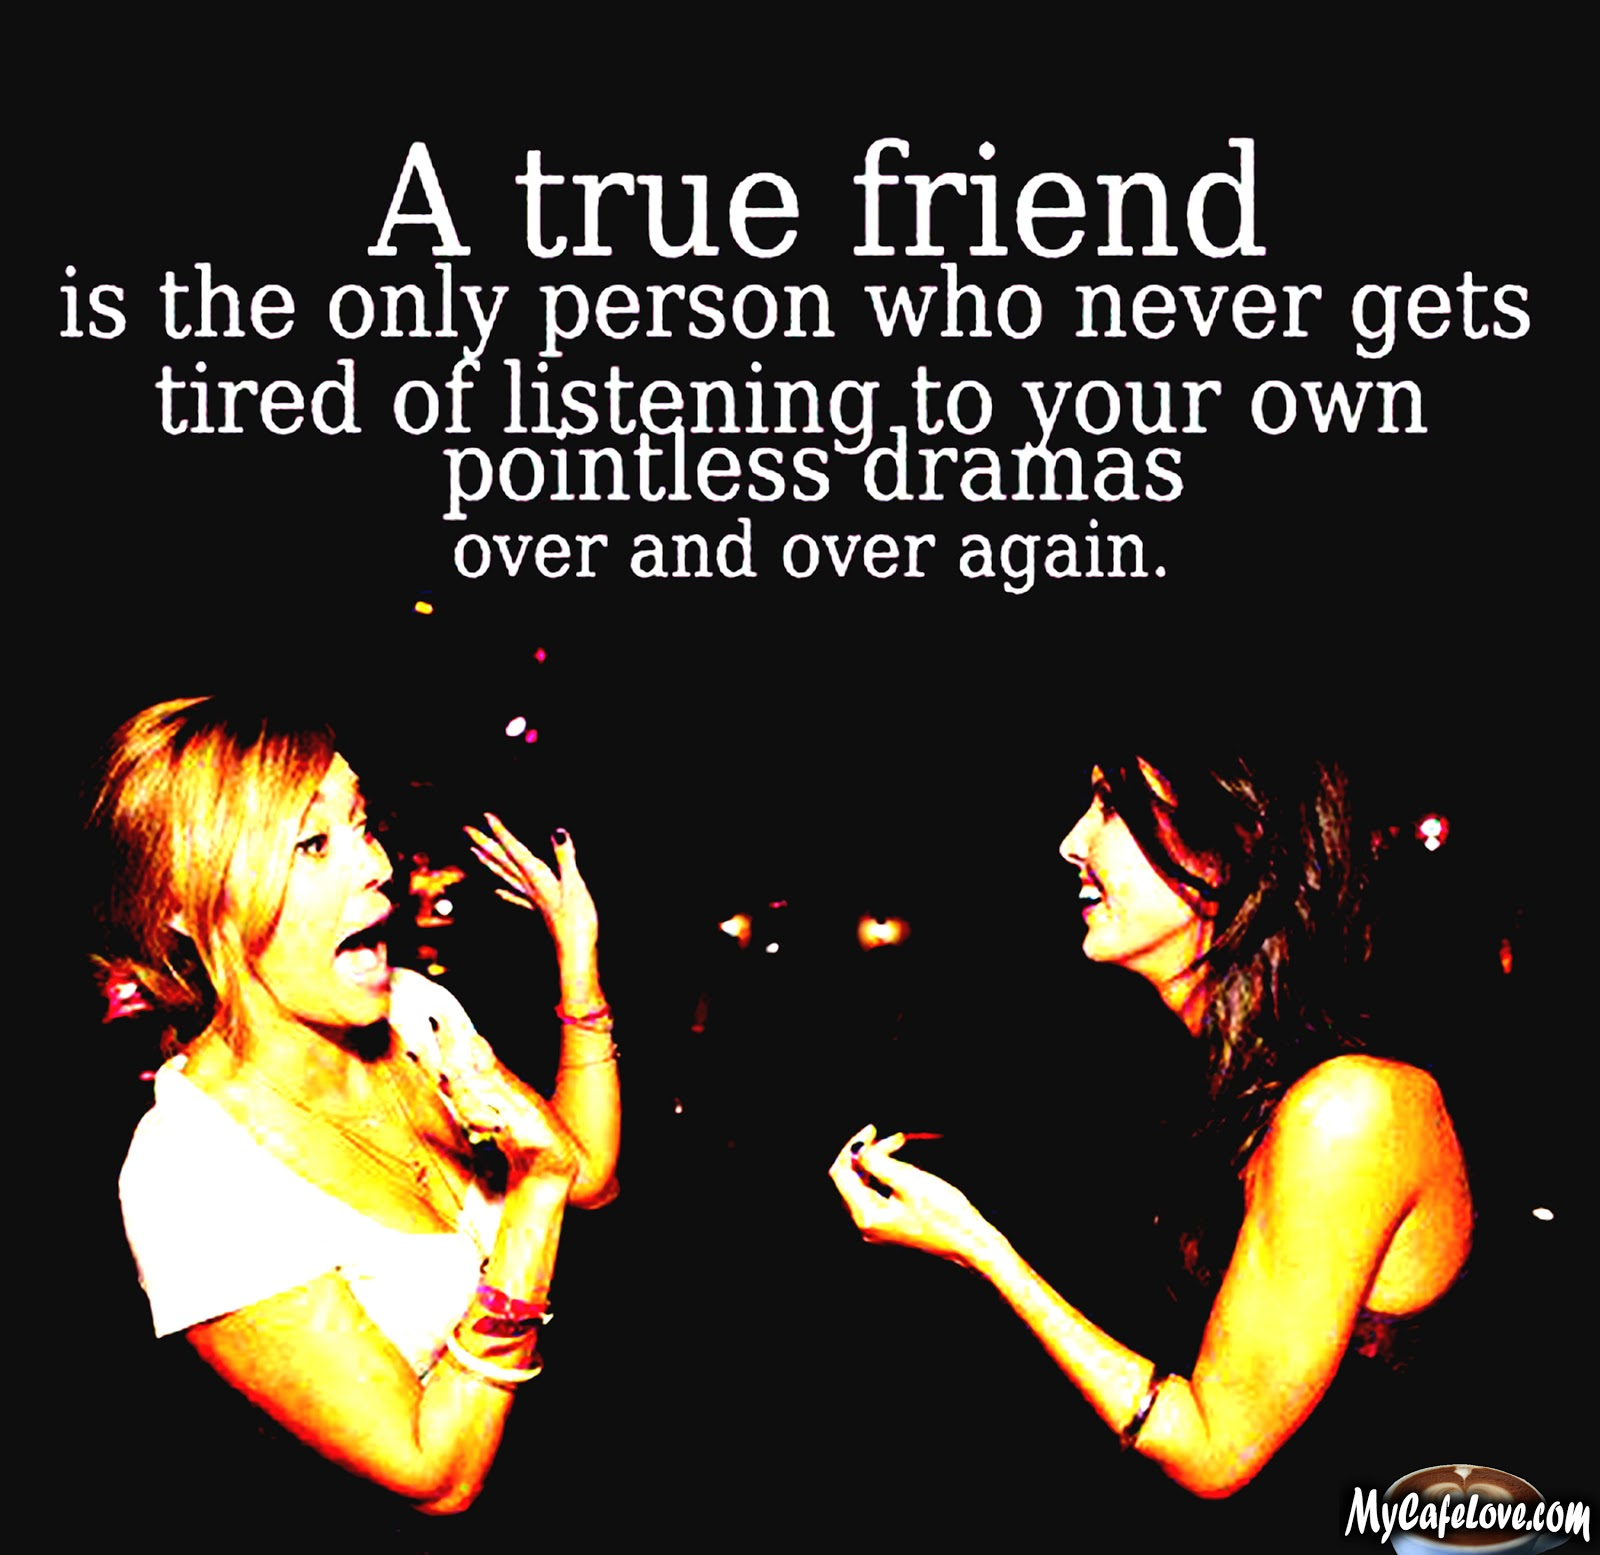 Friendship An Unspoken Promise Between Two People